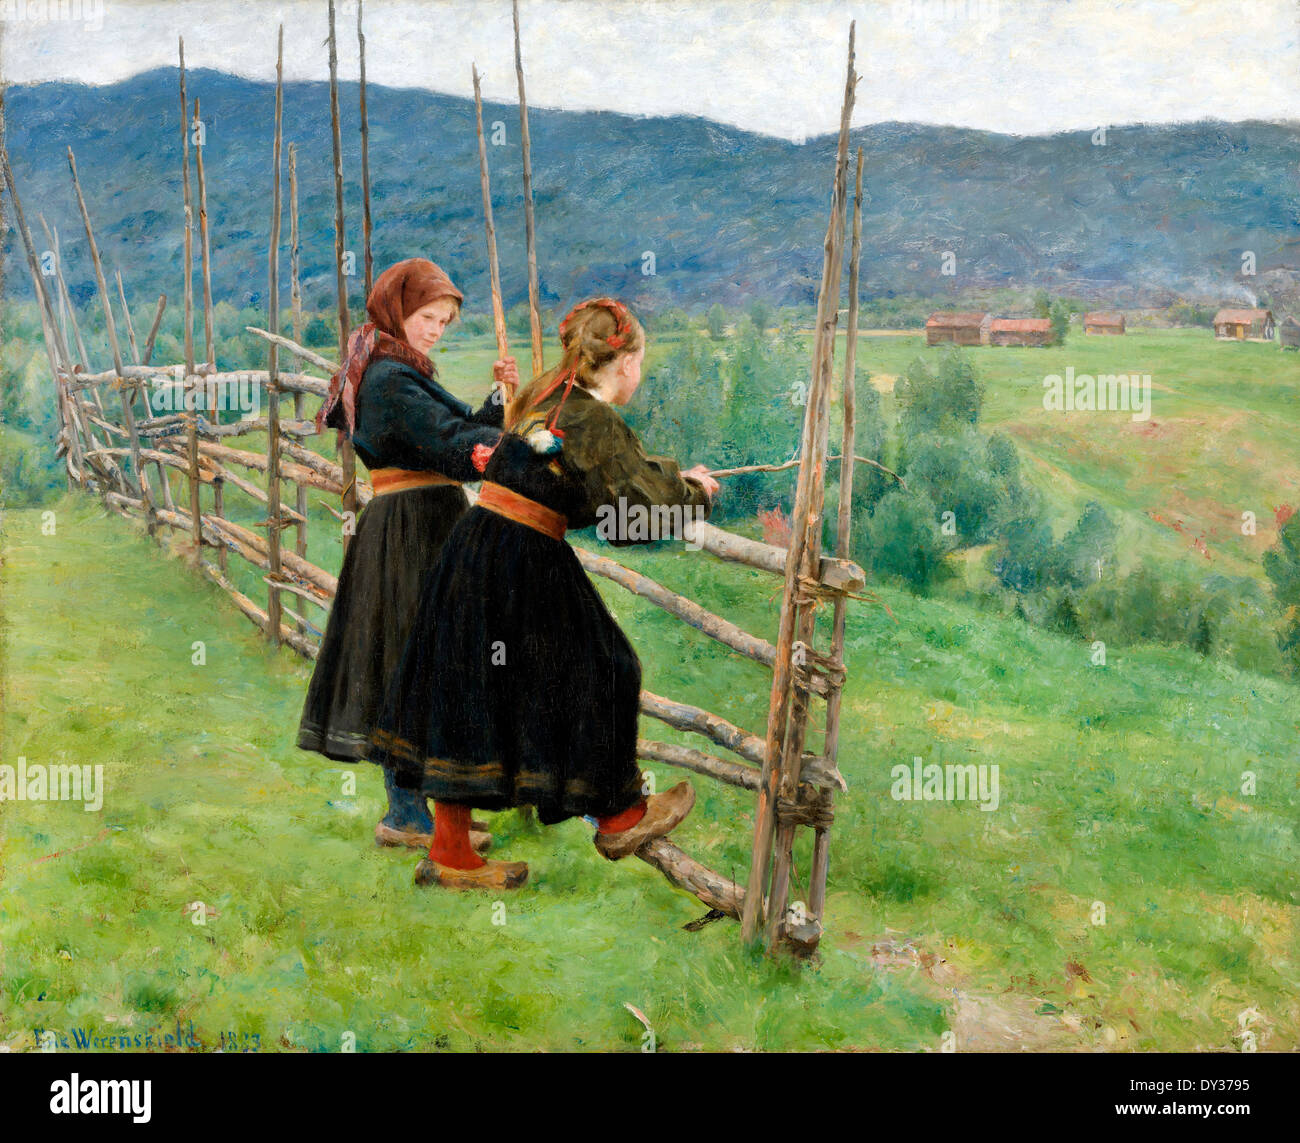 Erik Werenskiold, September 1883 Oil on canvas. The National Museum of Art, Architecture and Design, Norway. - Stock Image